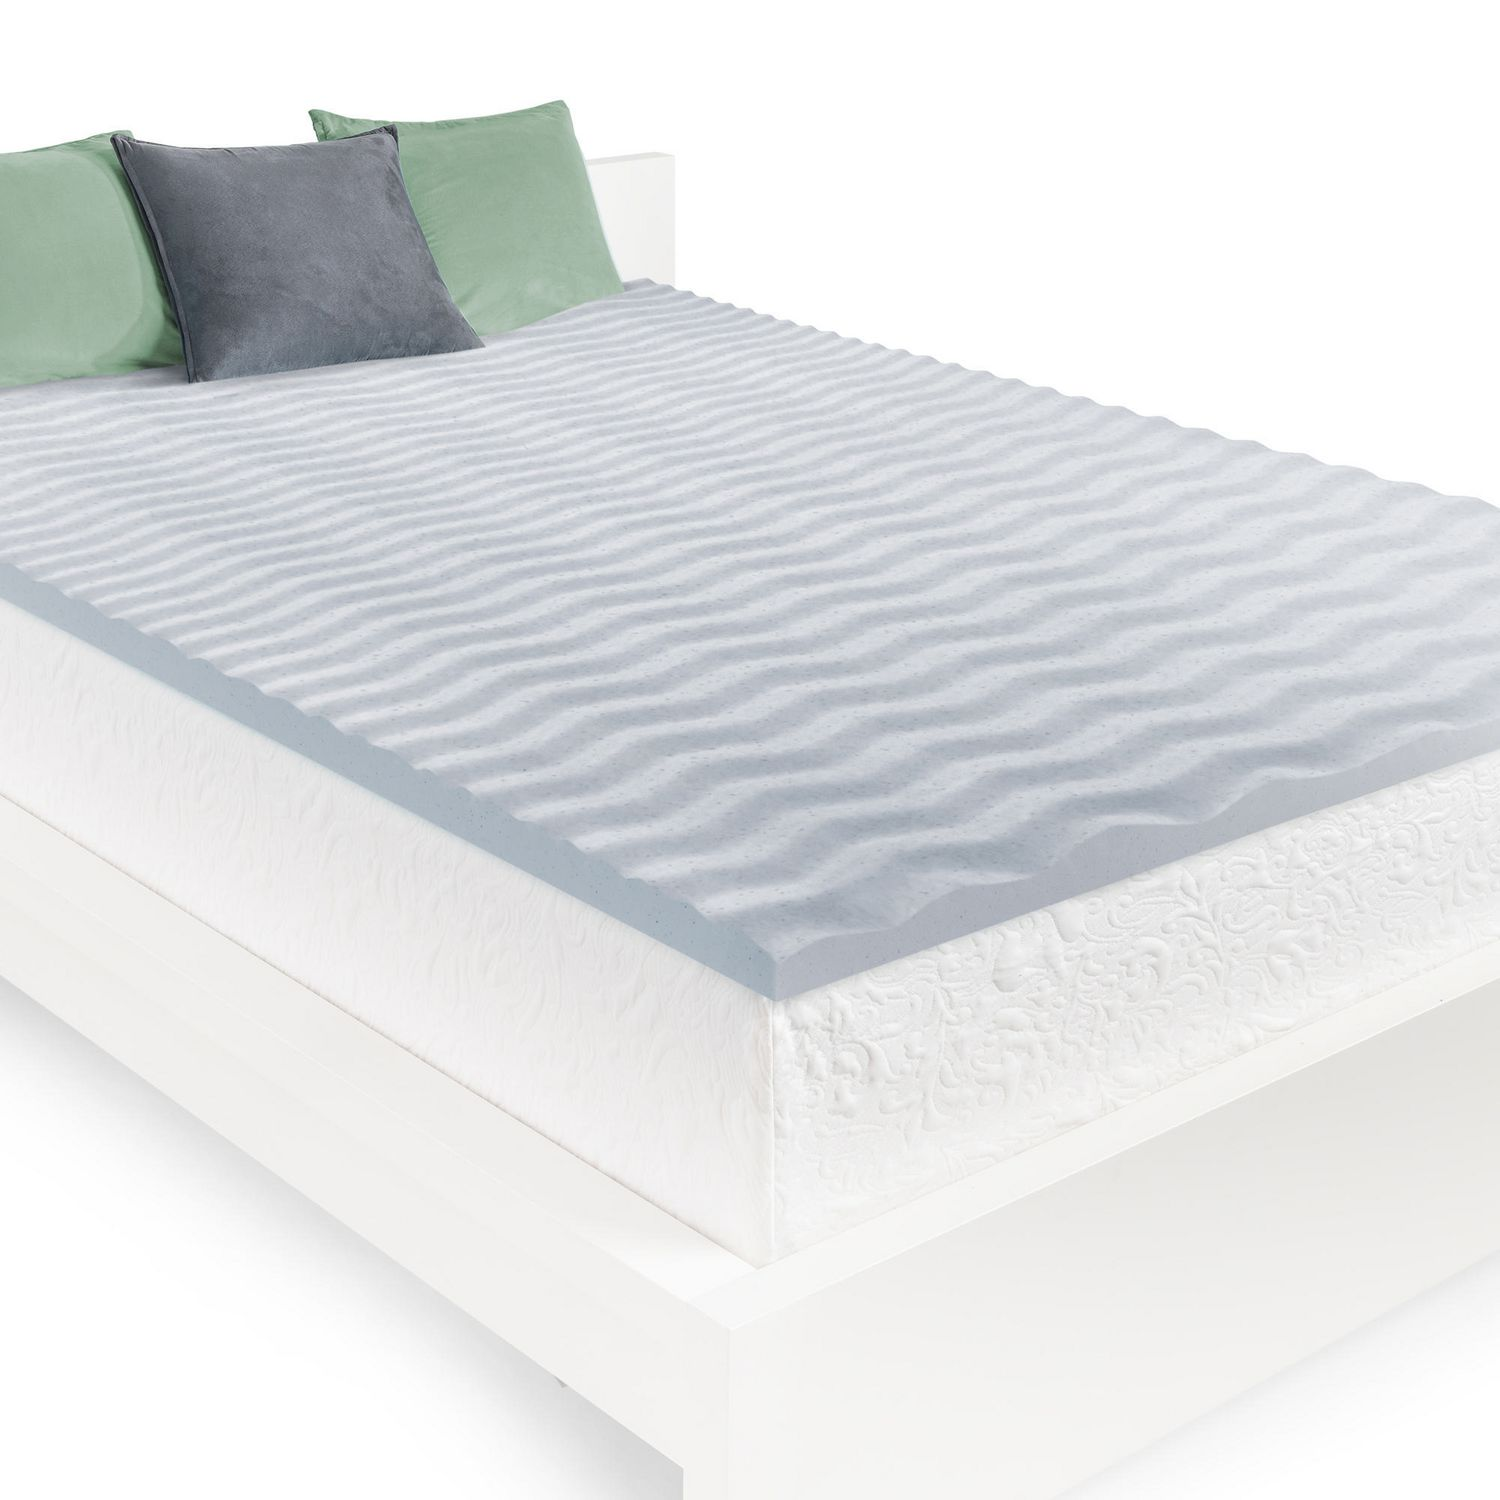 guides how hero topper foam pick cool pad memory mattress com overstock to thickness